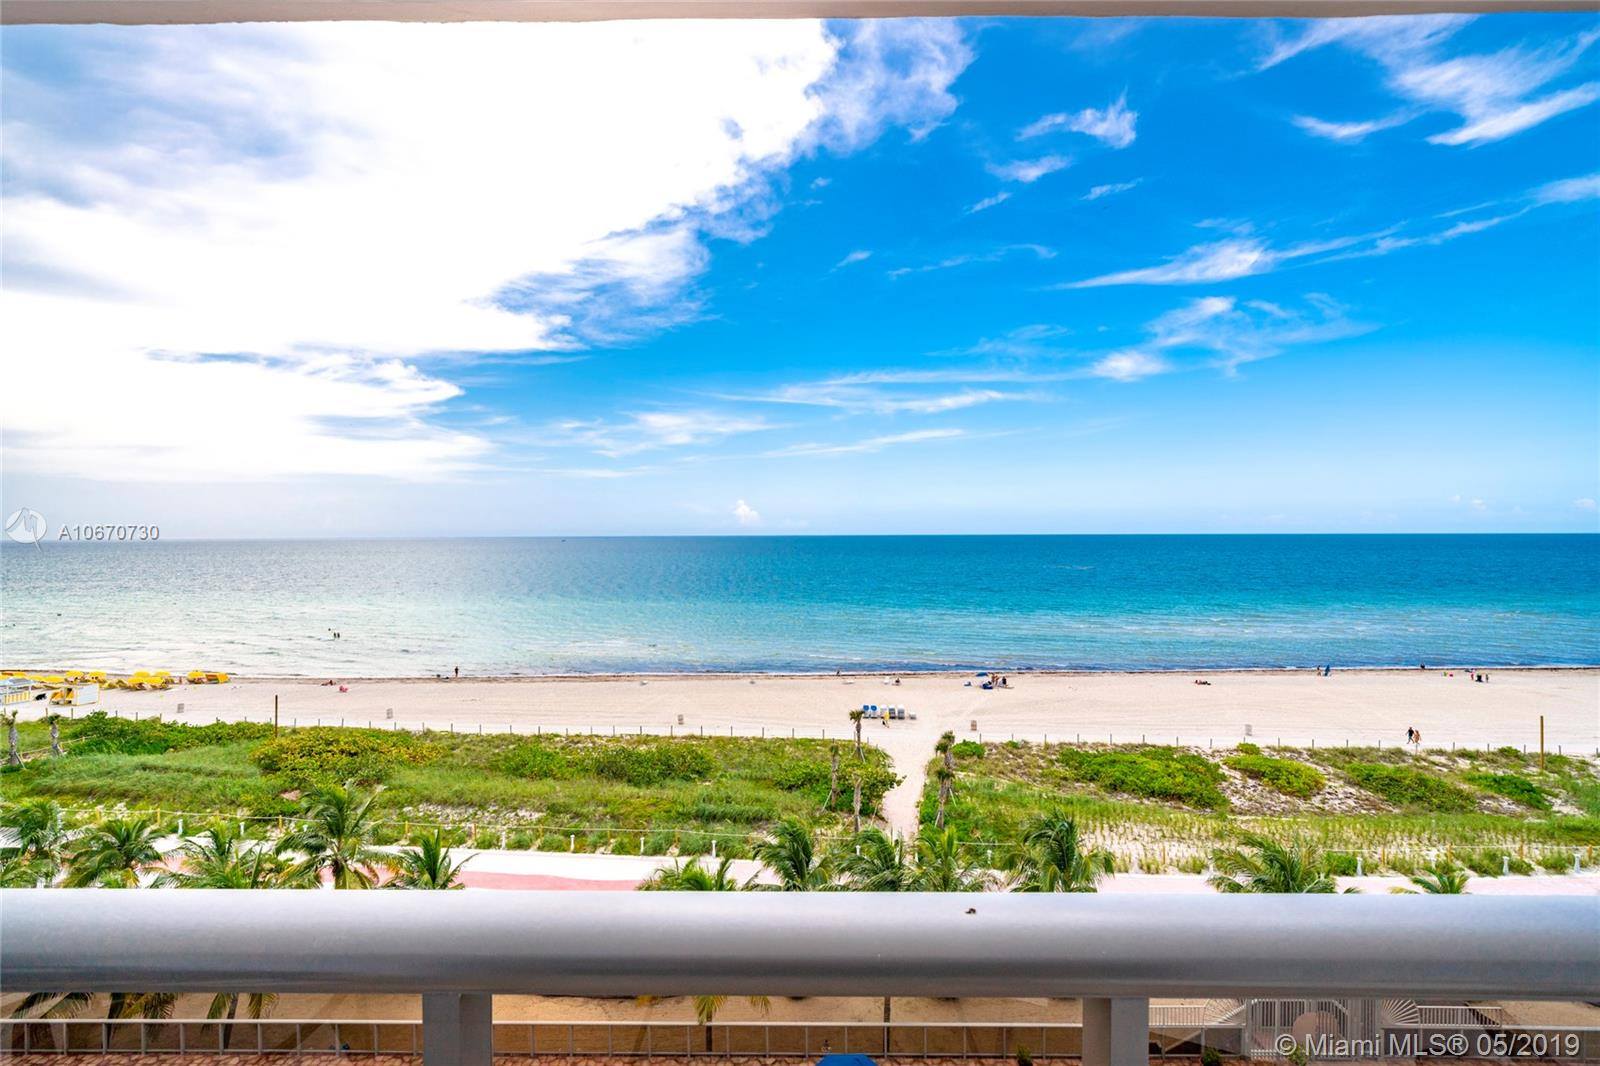 Enjoy unobstructed, direct east facing ocean views!  Step onto your 40 ft long balcony through massive sliding doors from both living room and master bedroom.  Hurricane impact windows and sliding doors throughout the entire unit.  Huge master bedroom suite, large 2nd bedroom, and an additional enclosed room that can be used as a 3rd bedroom, den, office, utility room, study, or storage. Current owner FULLY renovated the unit by opening up the kitchen to create an open floor plan, new tile floors, custom kitchen cabinets, new appliances, washer and dryer in unit, recessed designed ceiling with additional lights, and much more! Storage Room, BBQ Tiki Huts, Children's Playground, Heated Pool, Gym with Sauna, Library, Game Rooms, Covered Parking, 24/7 Valet, Security. Direct beach access.